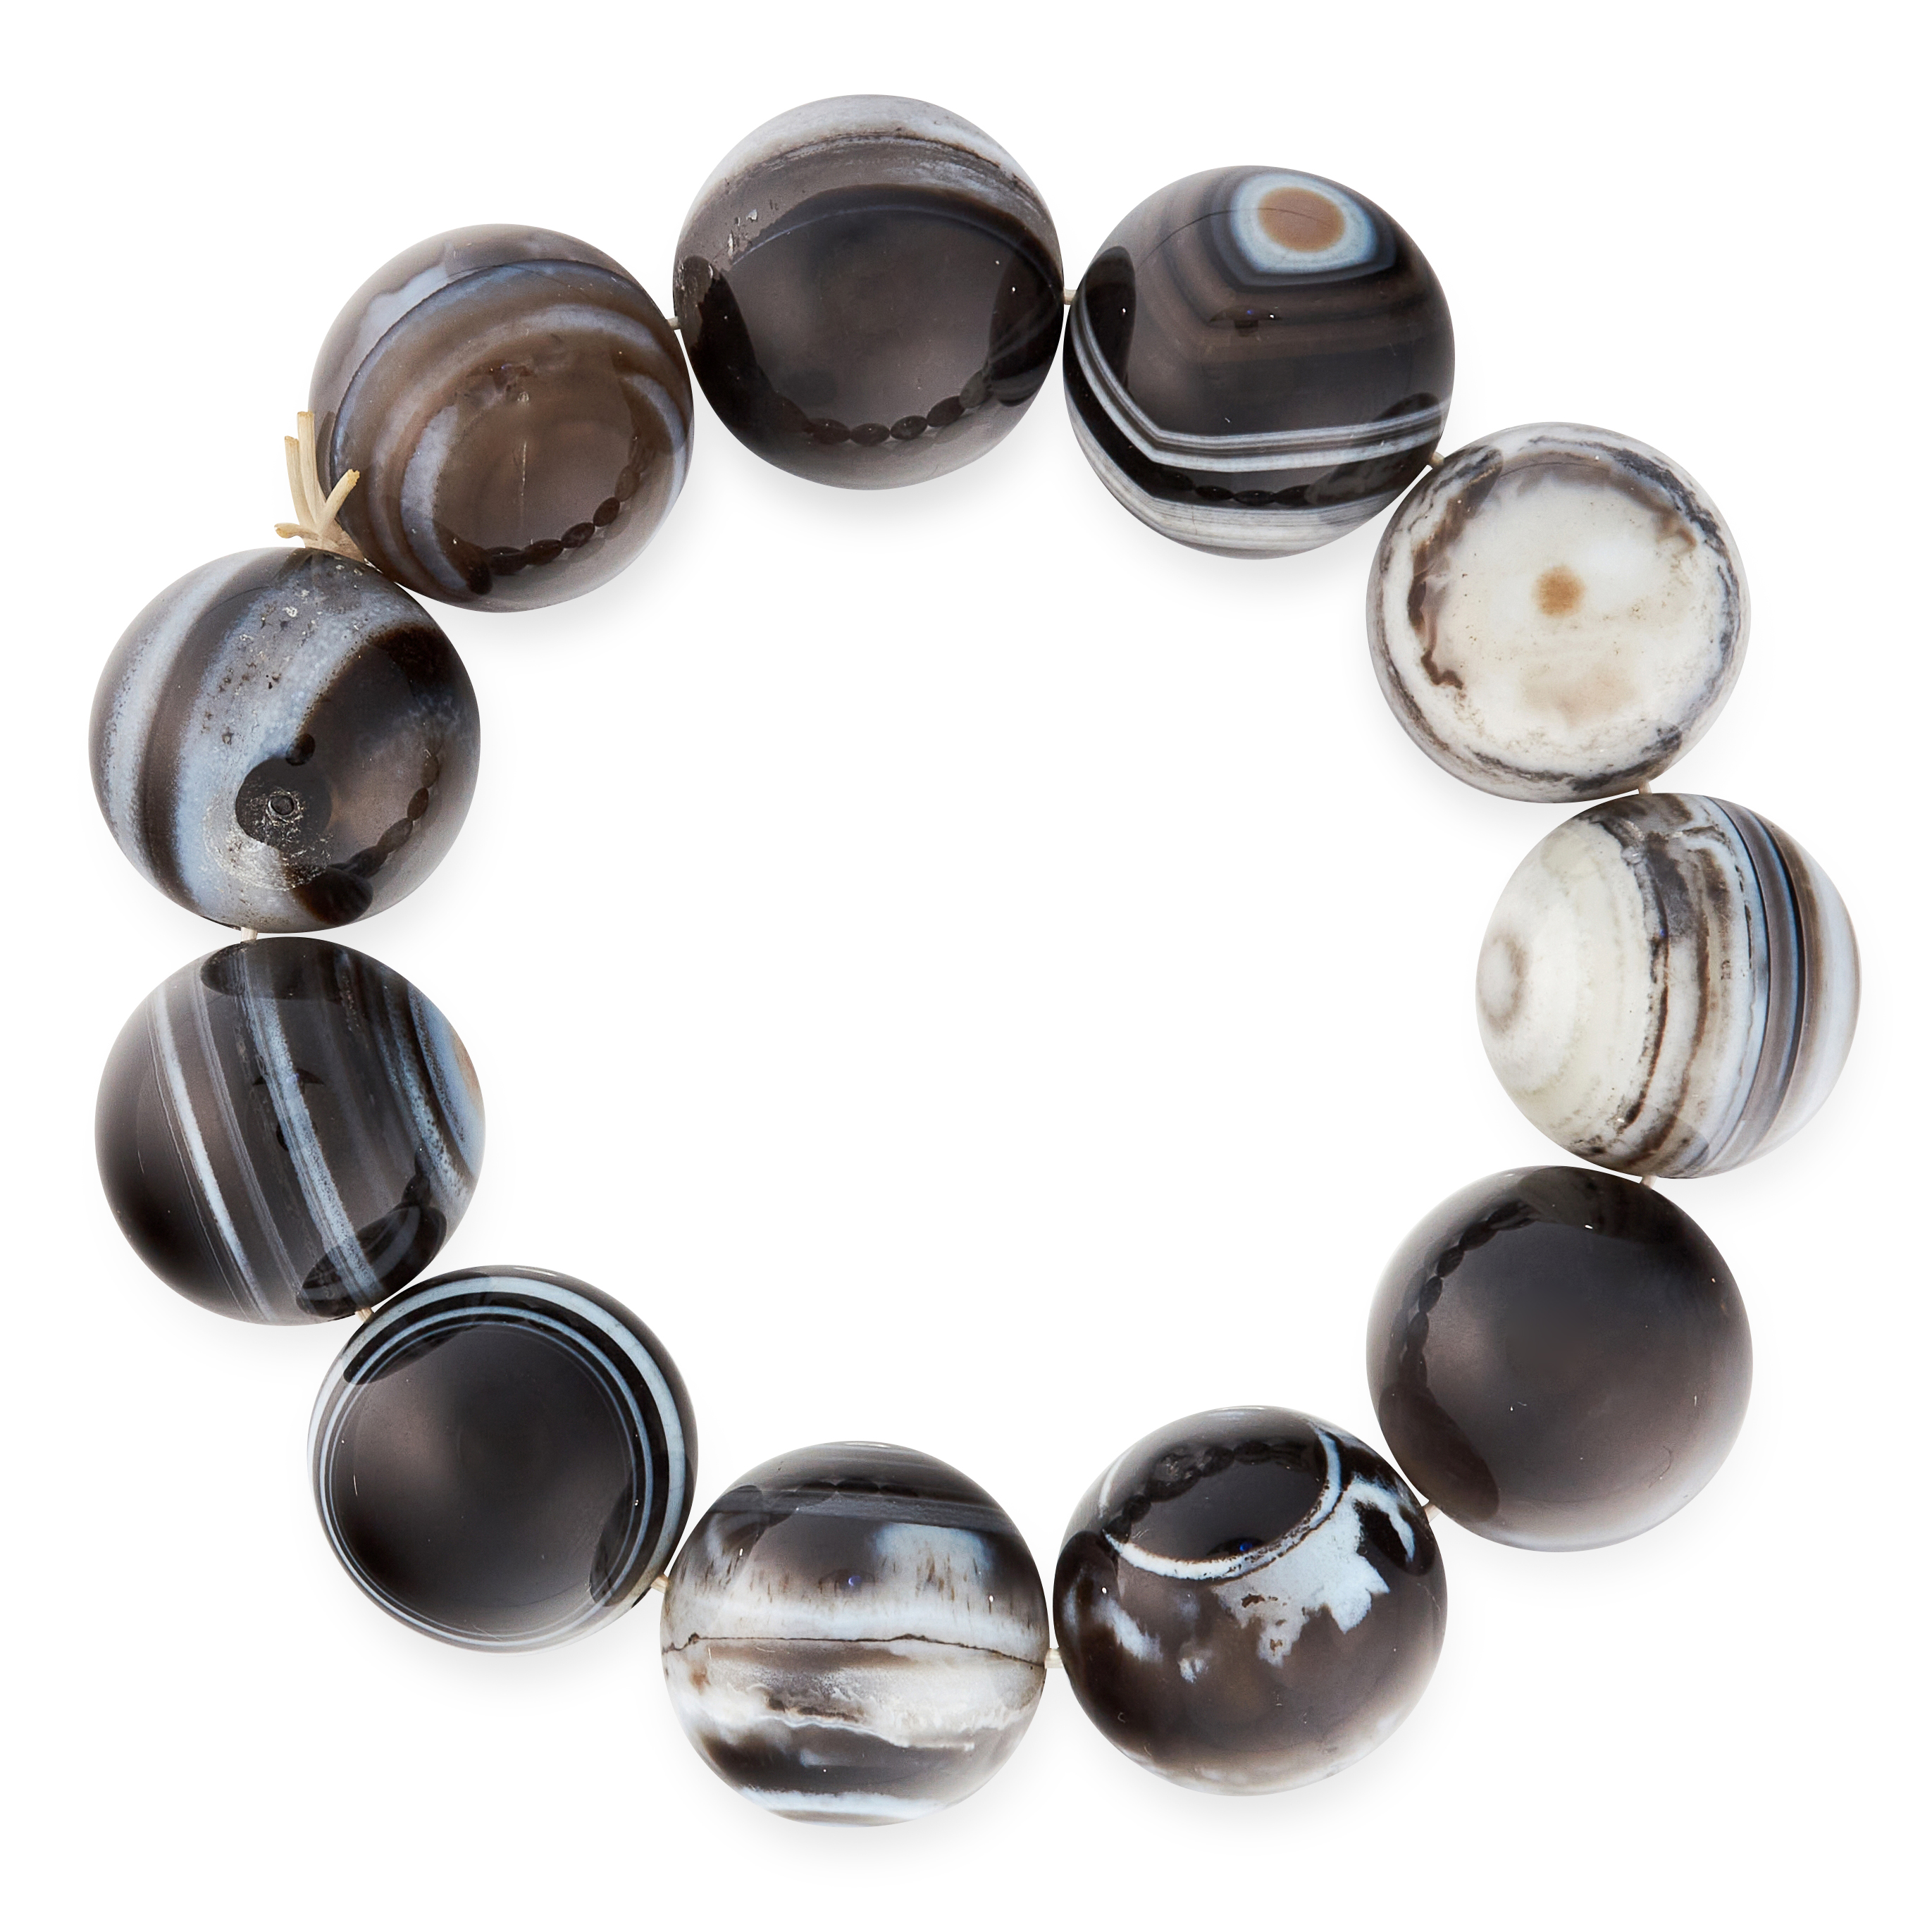 A BANDED AGATE BEAD BRACELET comprising of eleven beads 19.5mm in diameter, elasticated, 112.7g.